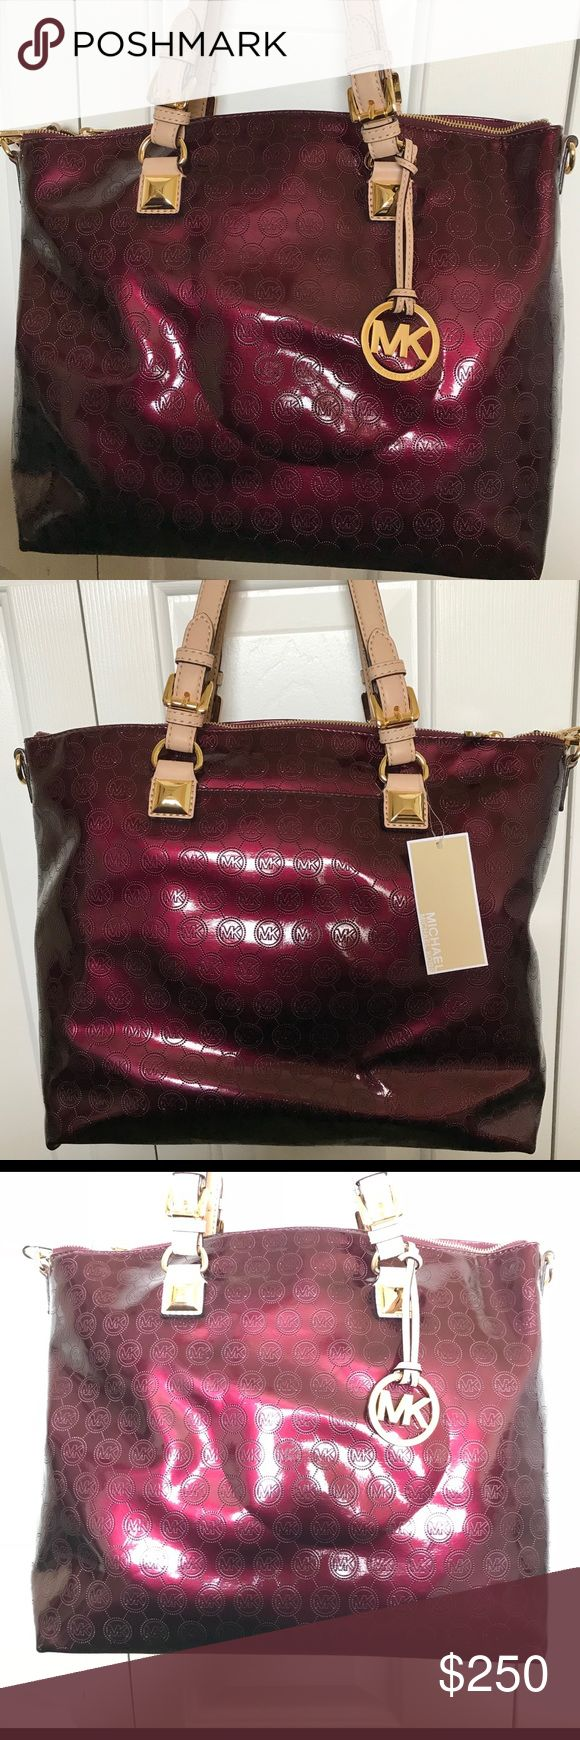 NWT authentic Michael Kors red/cranberry handbag New with tags purchased from Macy's authentic Michael Kors cranberry red handbag.  Can be used over the shoulder or cross body.  Bag comes with long strap.  Please look at the pictures, bag has a crease from the handle do to storage.   Comes with dustbag   Please ask all questions before offer. Michael Kors Bags Shoulder Bags